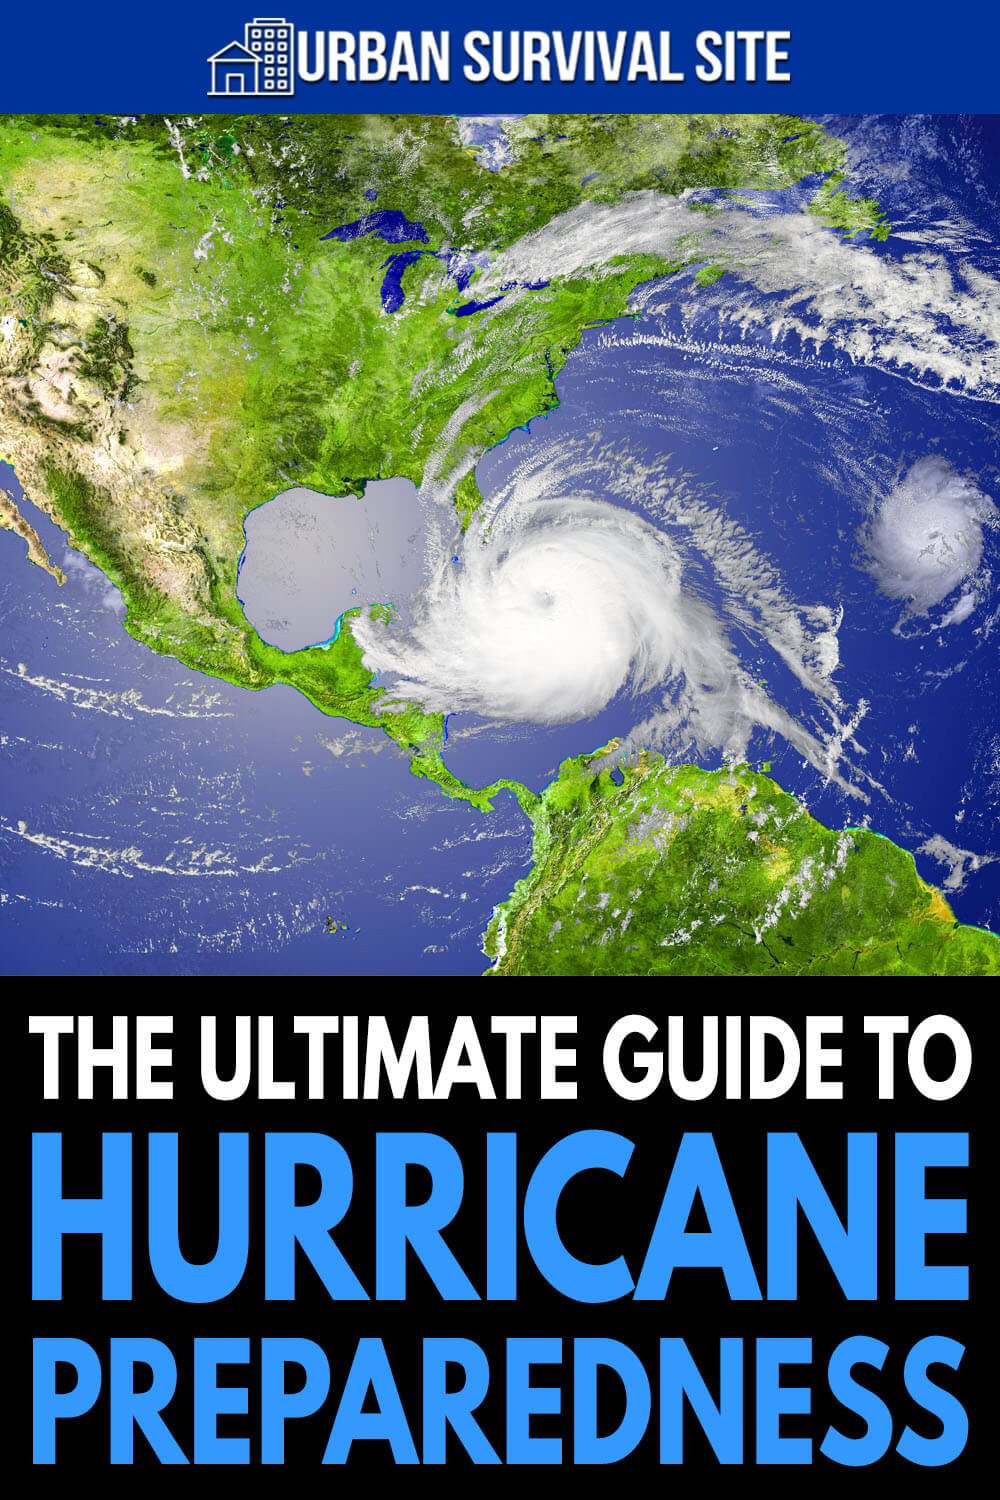 The Ultimate Guide To Hurricane Preparedness